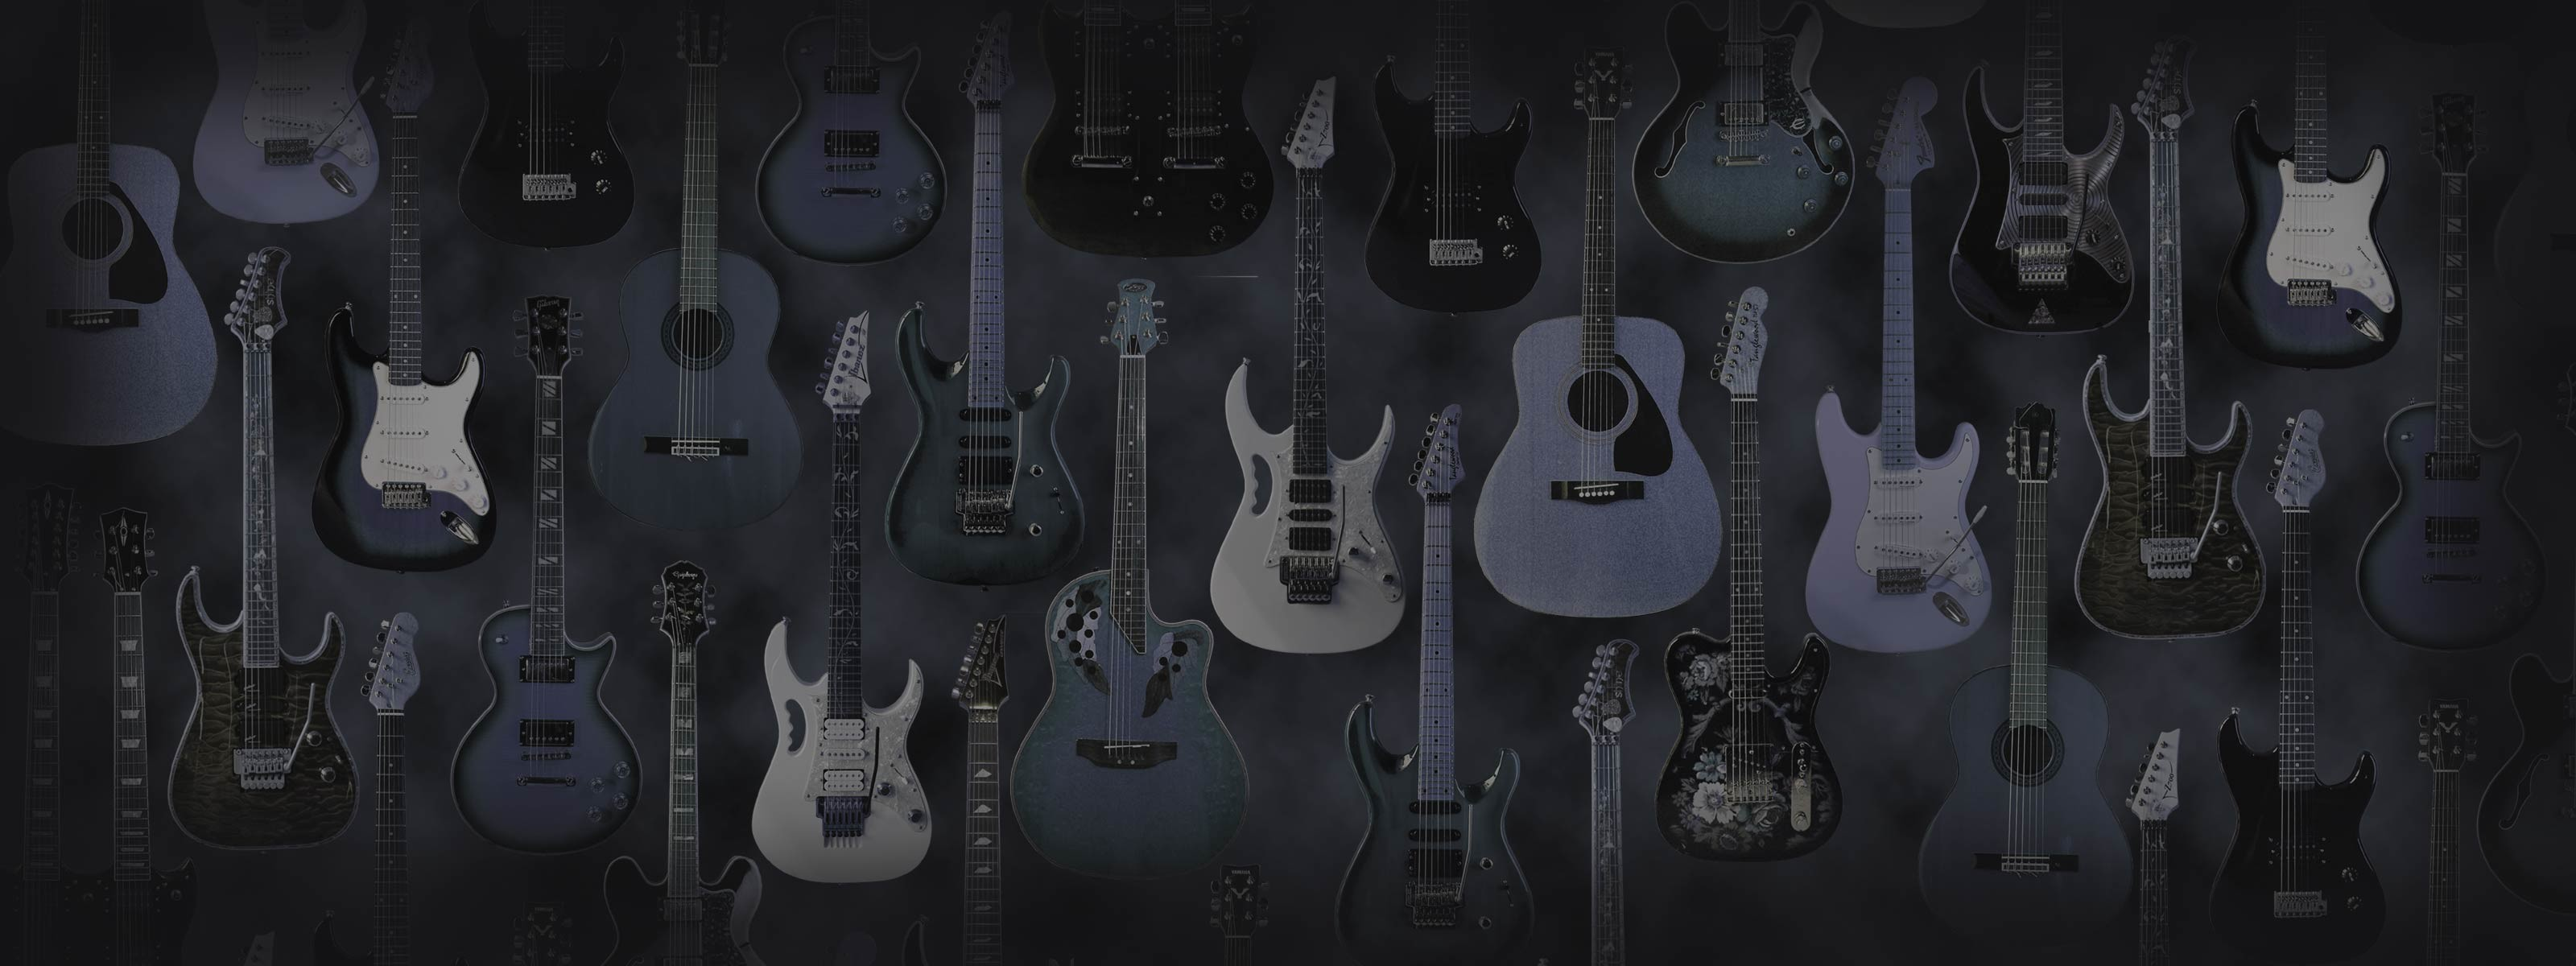 Dual monitor wallpaper, electric and acoustic guitars